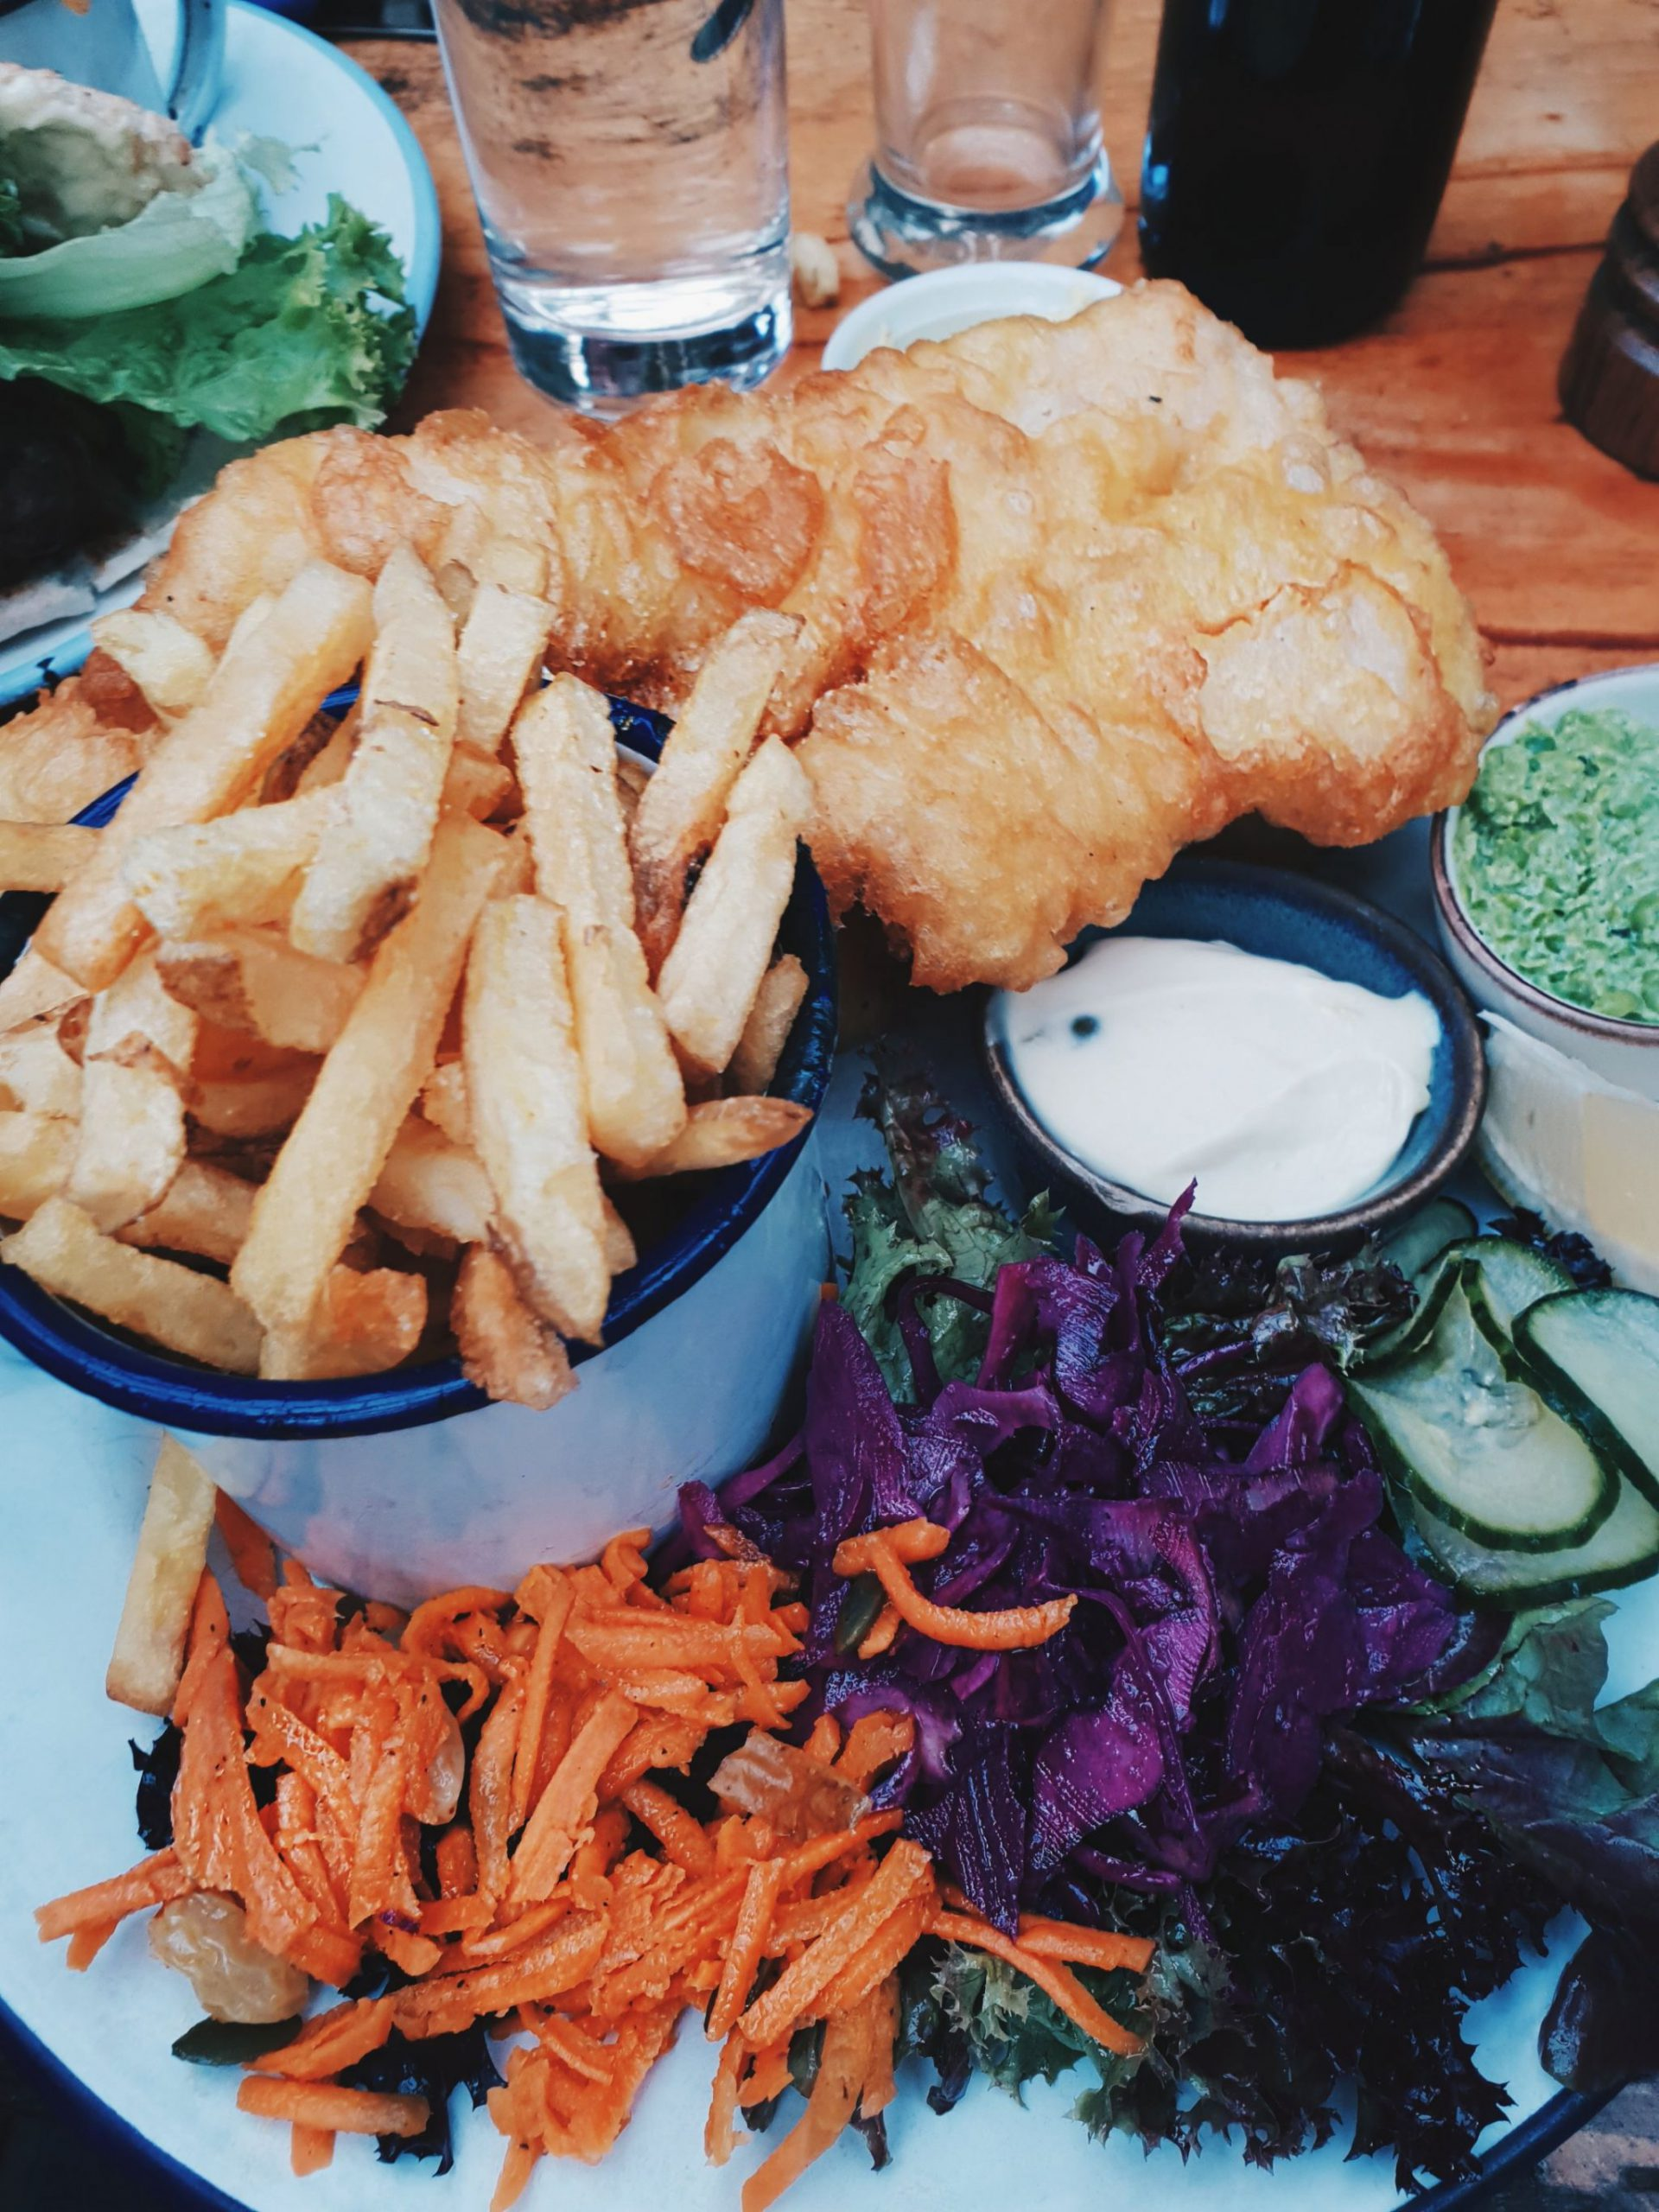 Fish and Chips - one of my favourites